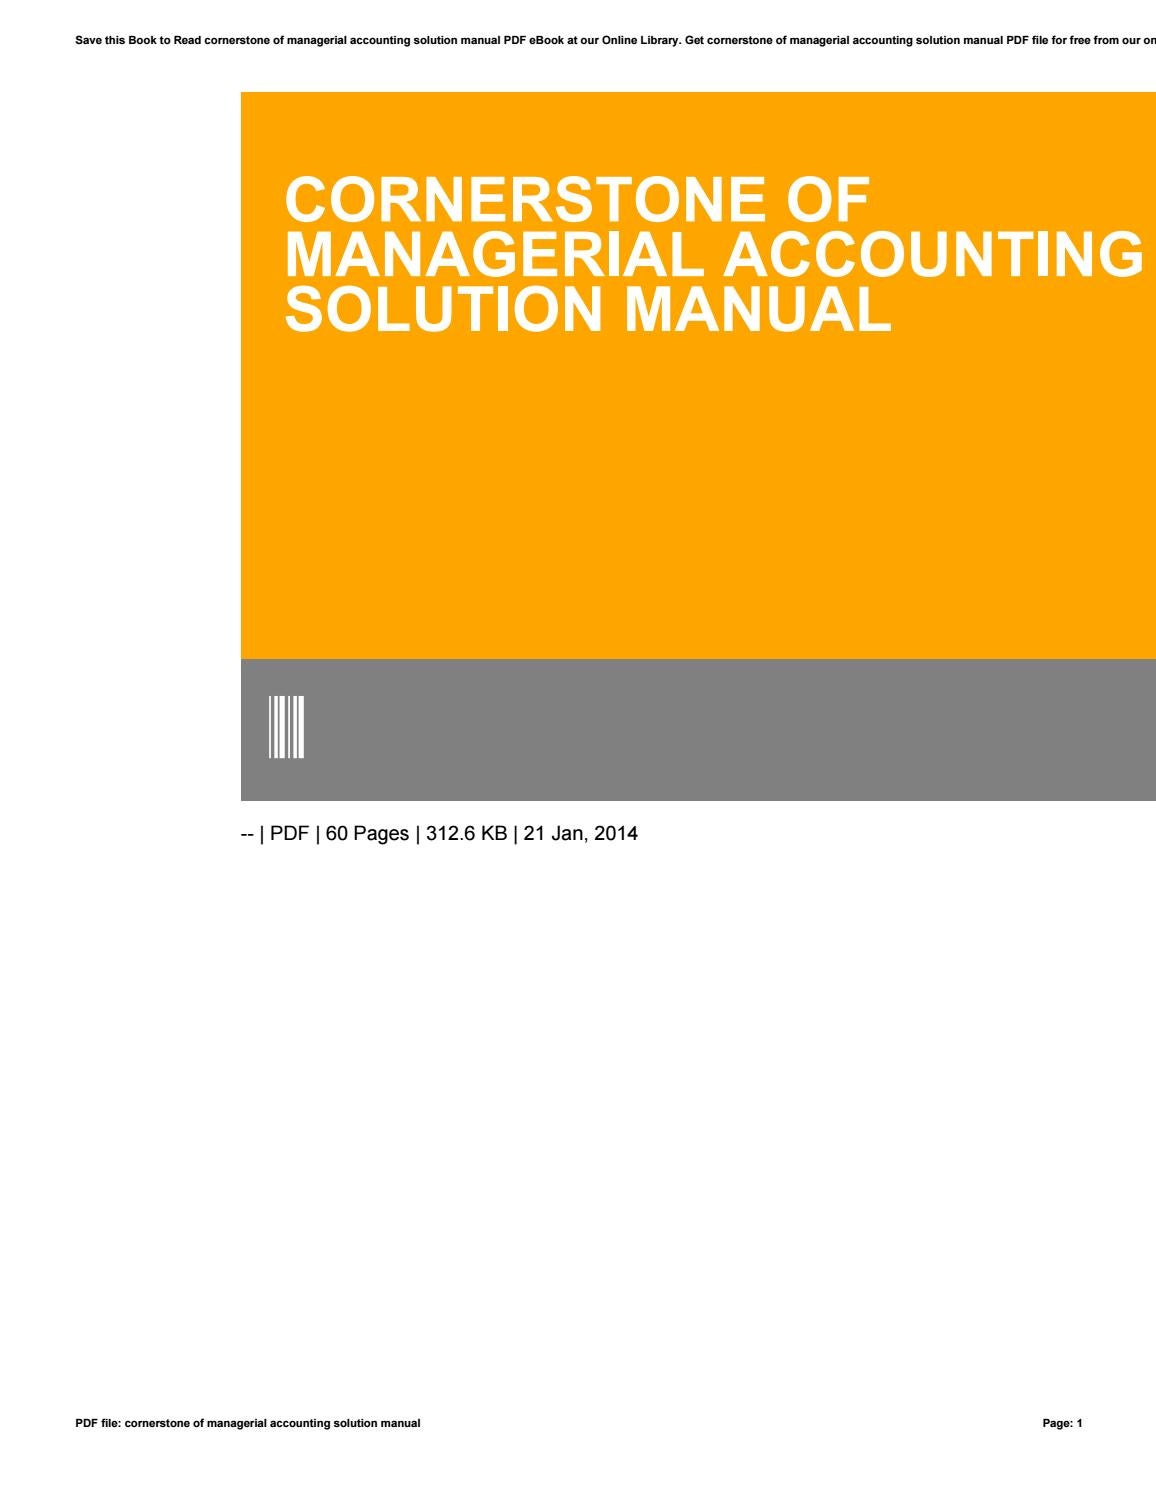 Cornerstone Of Managerial Accounting Solution Manual by johng7126 - issuu